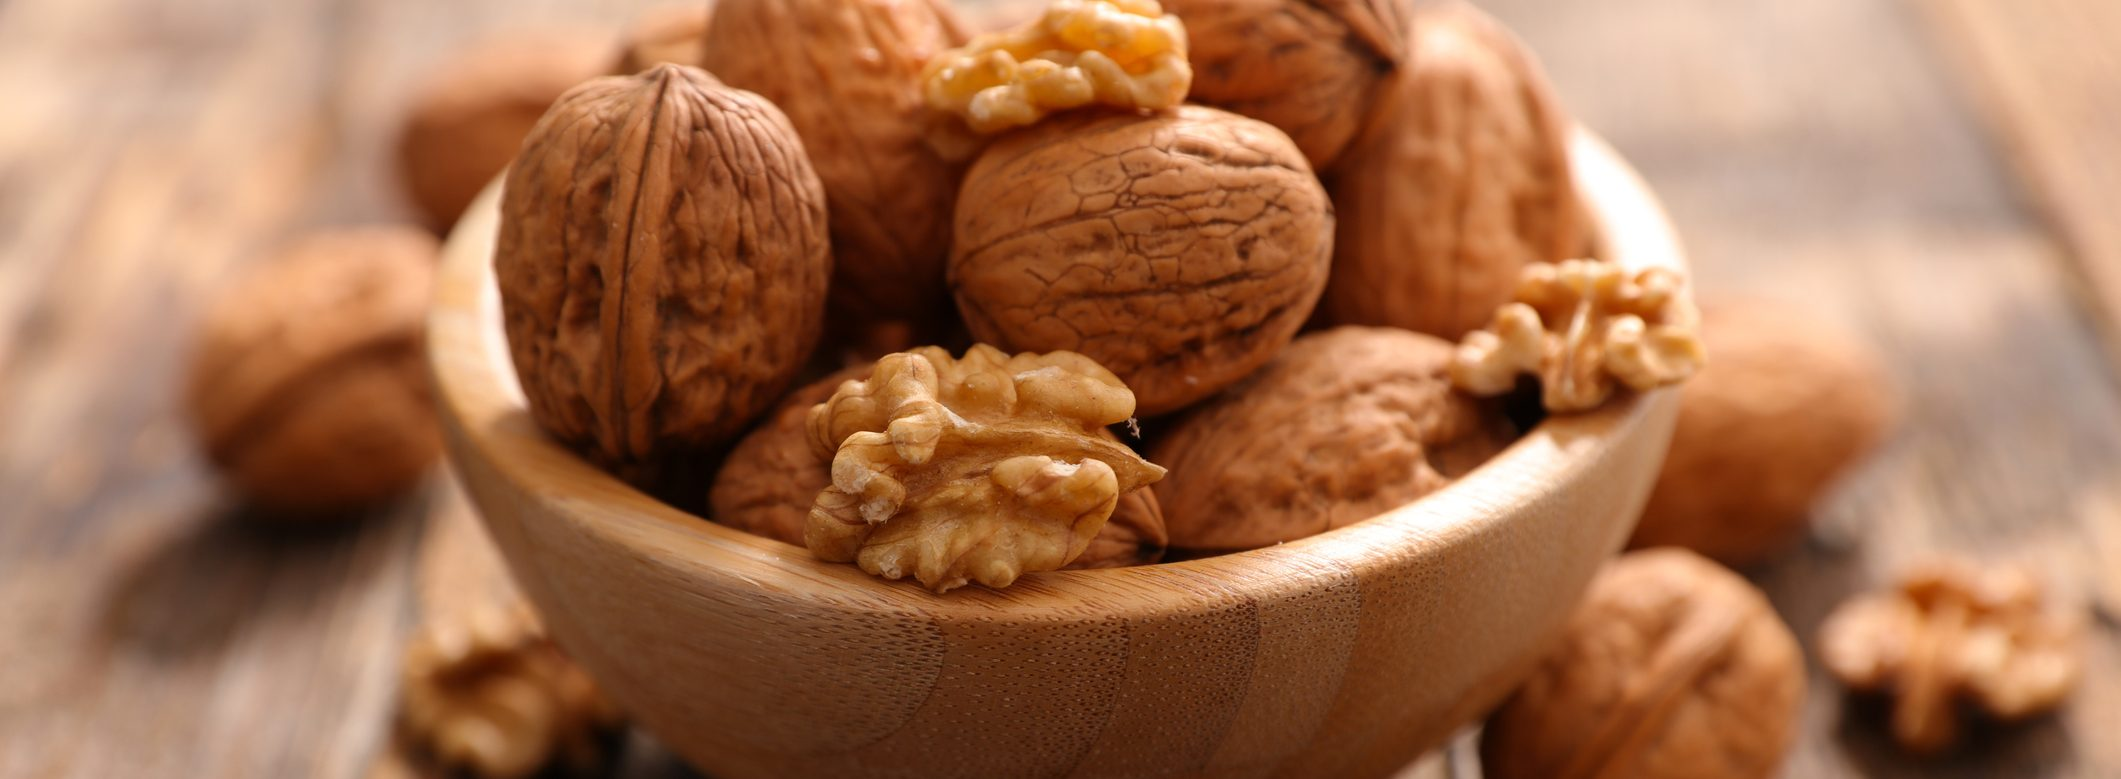 10 Health Benefits Of Walnuts That You Should Know